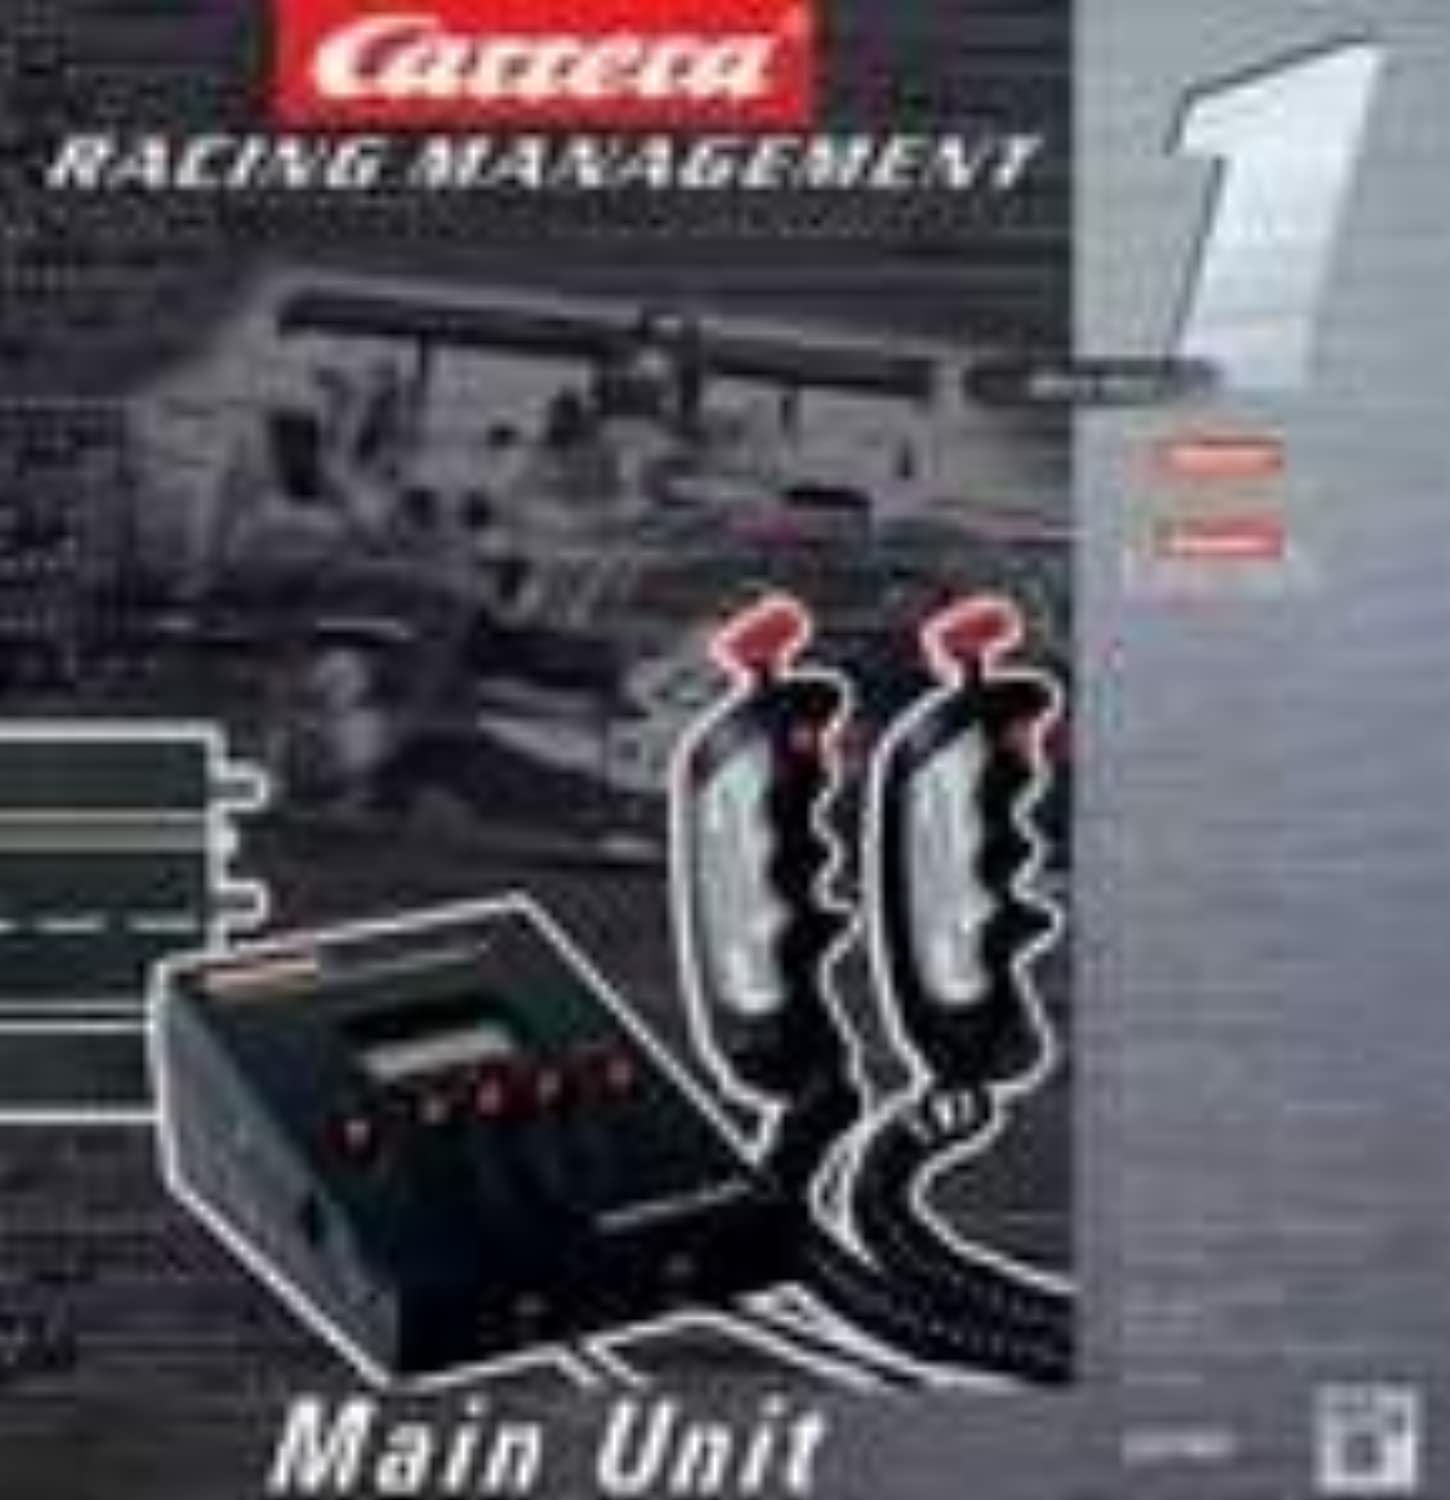 Carrera 20740 - Racing Management Main Unit